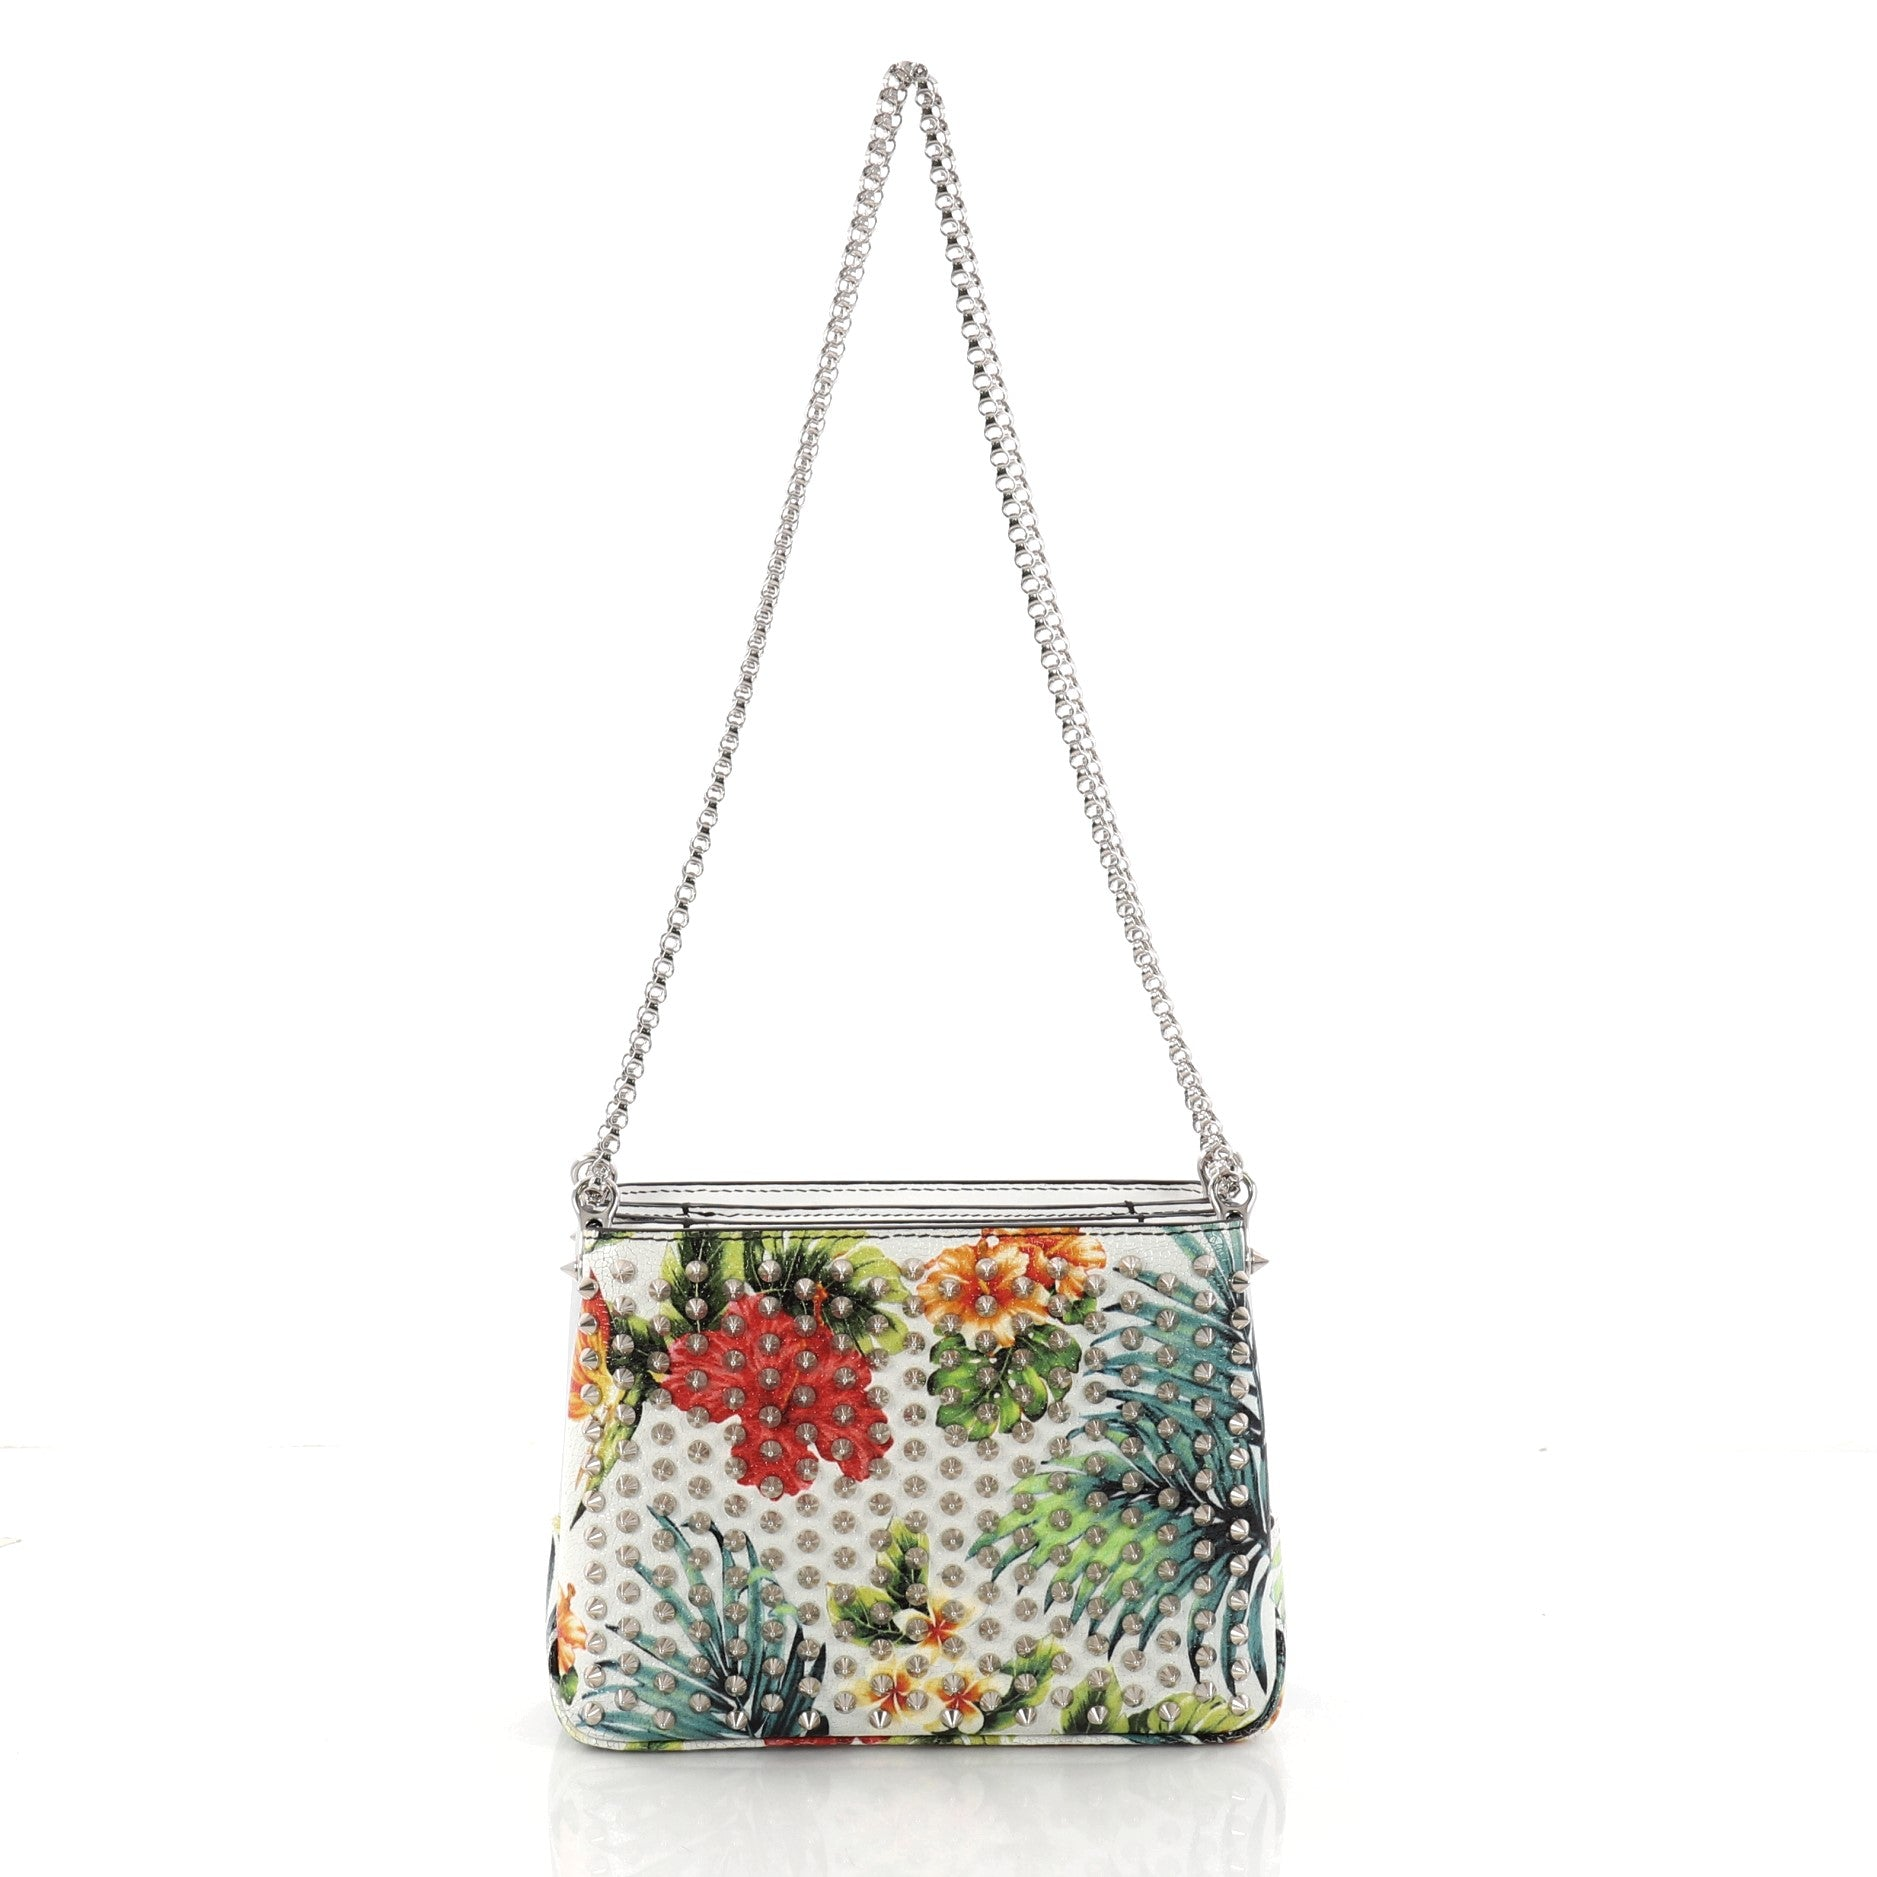 Triloubi Chain Bag Printed Leather Small